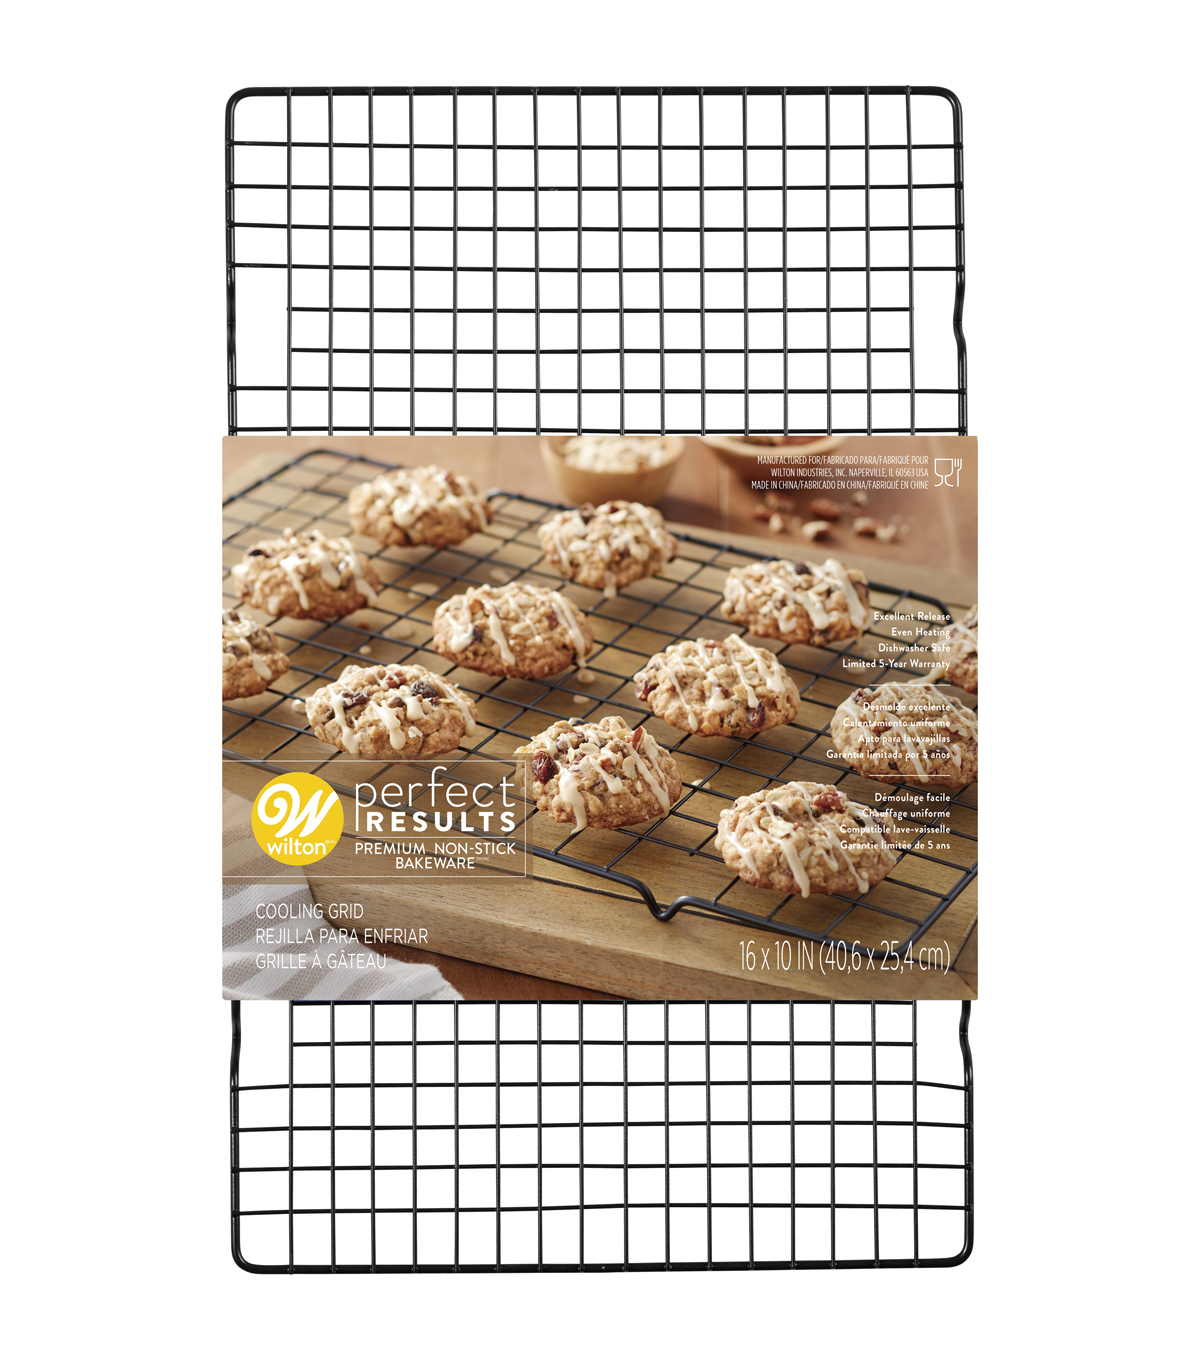 Wilton 16X10 Non-stick Cooling Grid